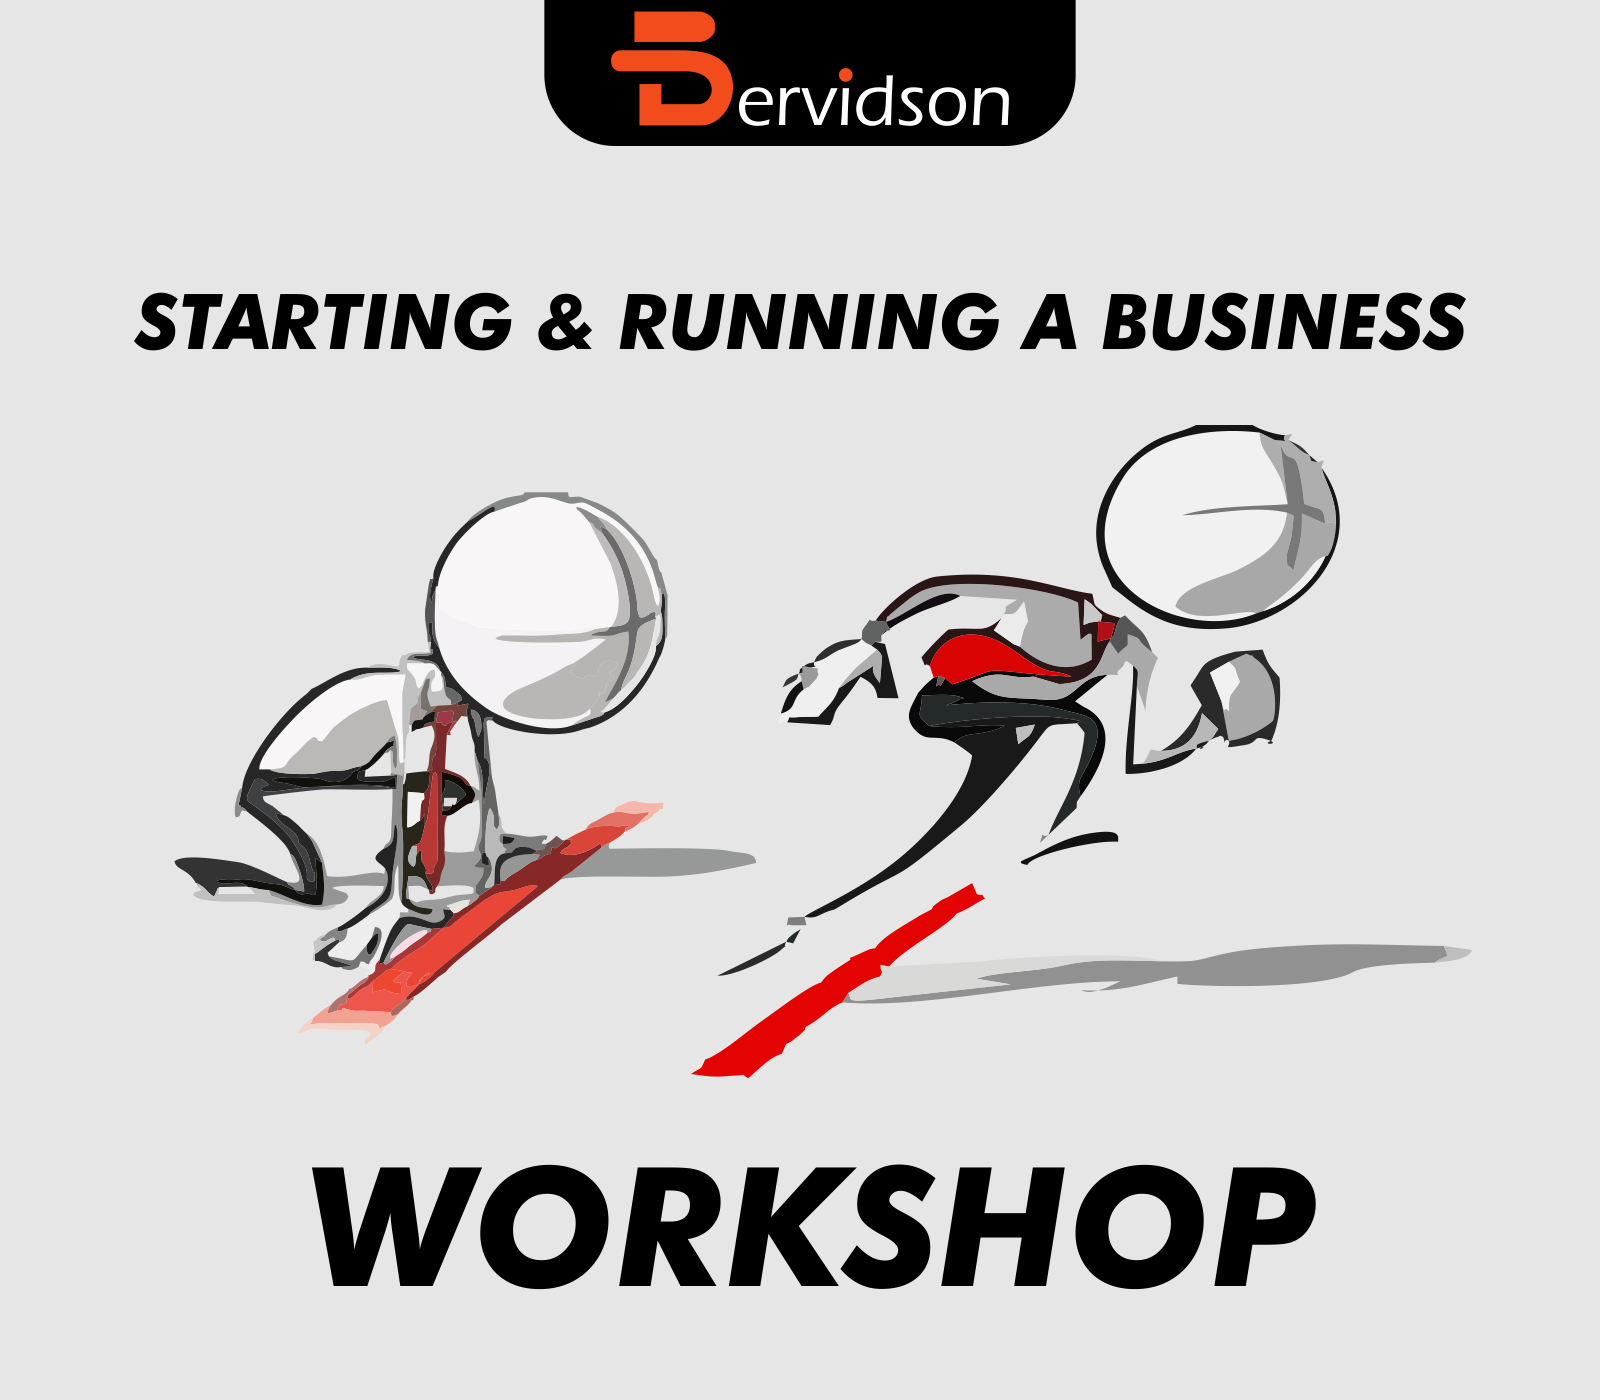 Starting & Running A Business Workshop